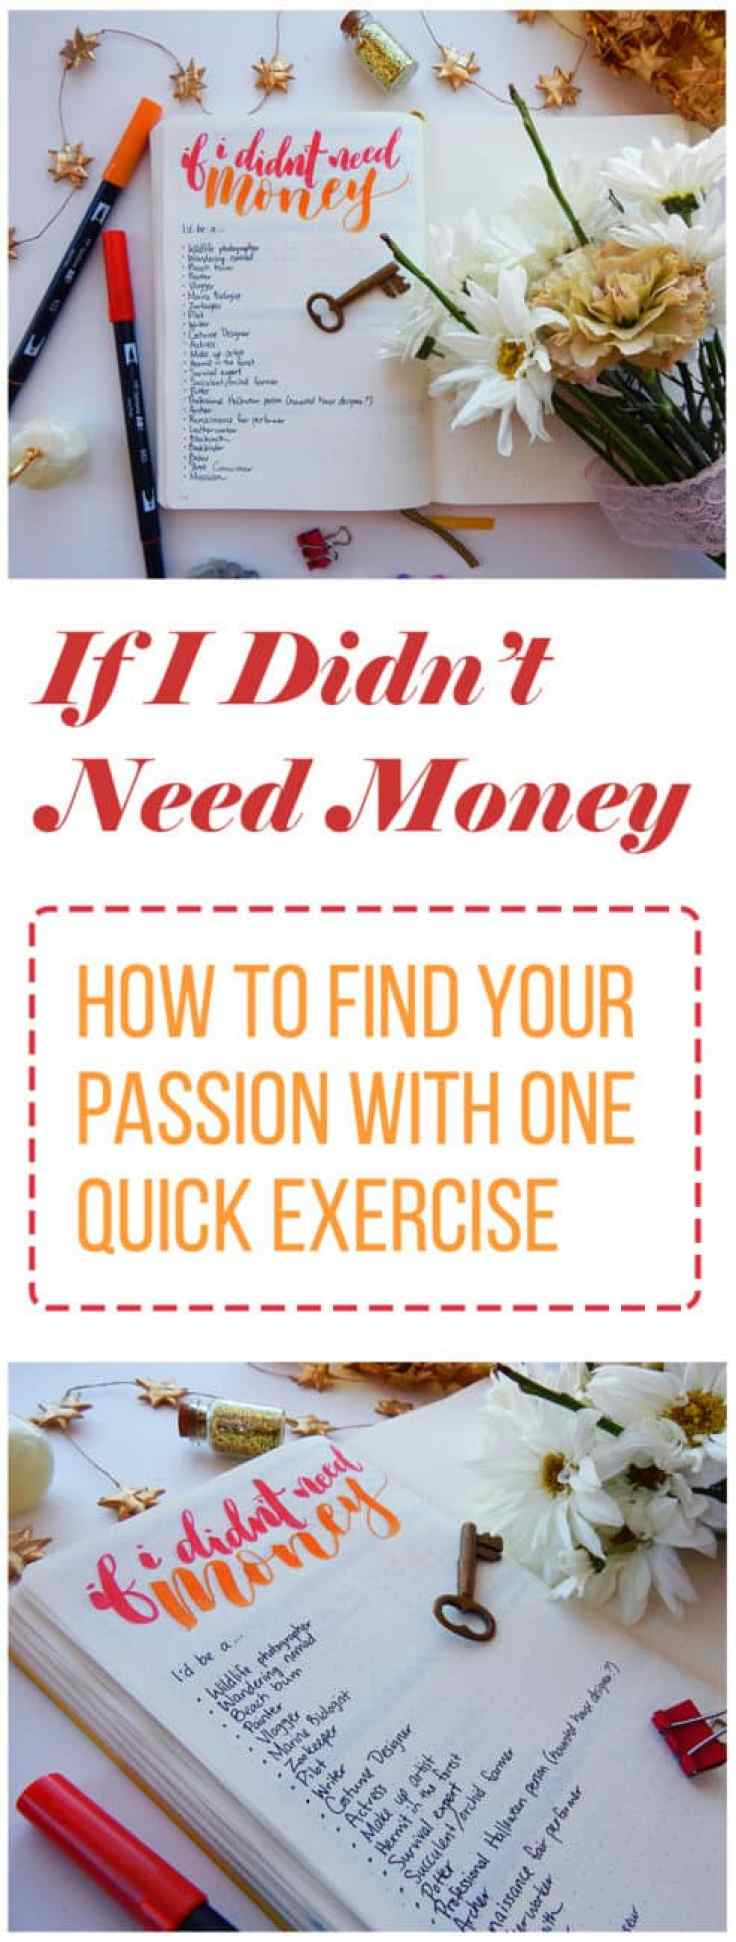 Sometimes it can be hard to figure out how to find your passion, whether that passion is a career or a hobby. There are so many options, and you have to consider how practical it might be. This super simple exercise will take less than 20 minutes and get you past these blocks to help you see what your heart wants!